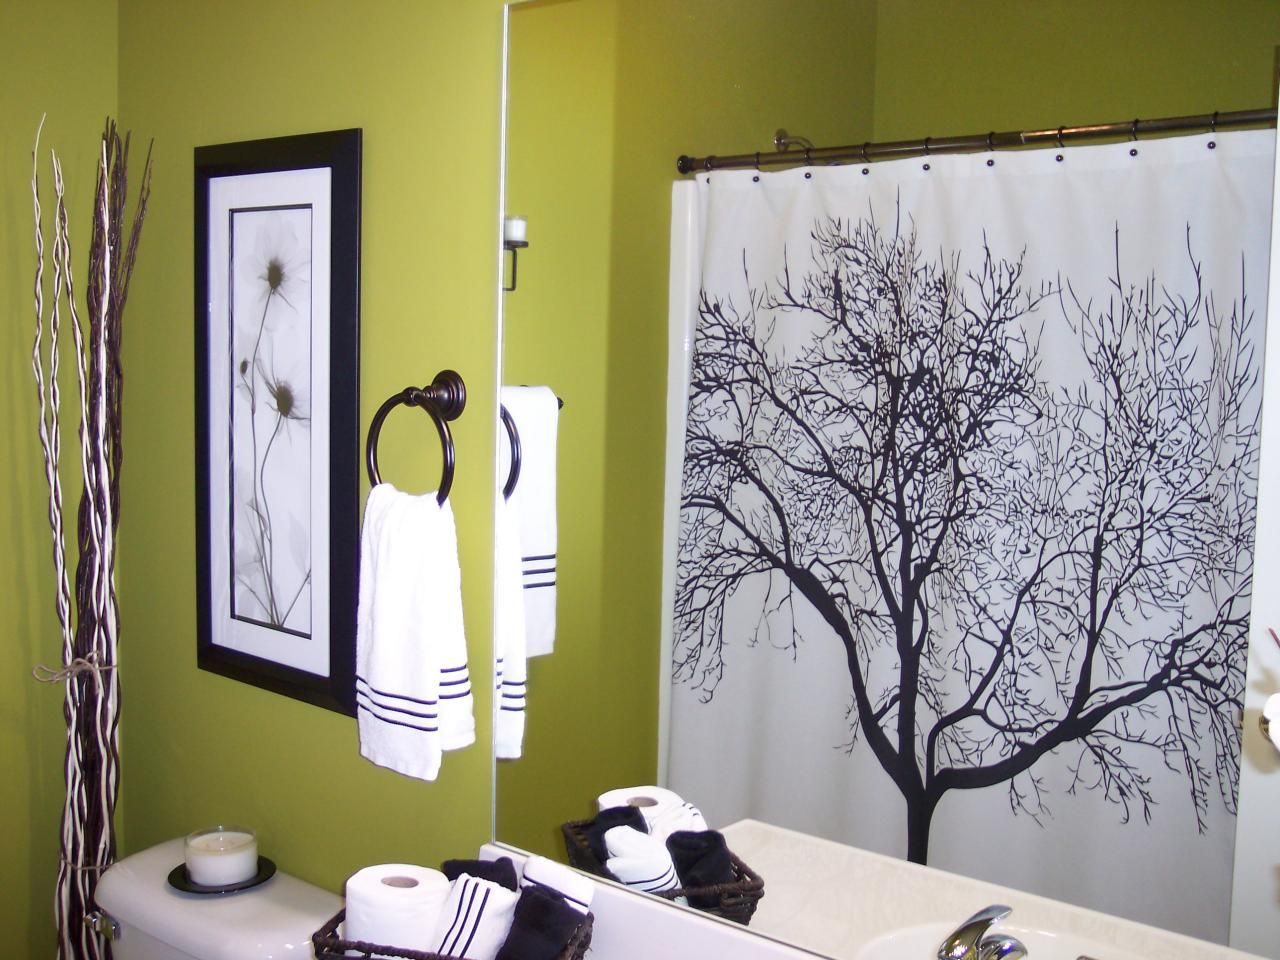 rms-jenlynn_bathroom-tree-shower-curtain-green_s4x3-jpg-rend-hgtvcom-1280-960